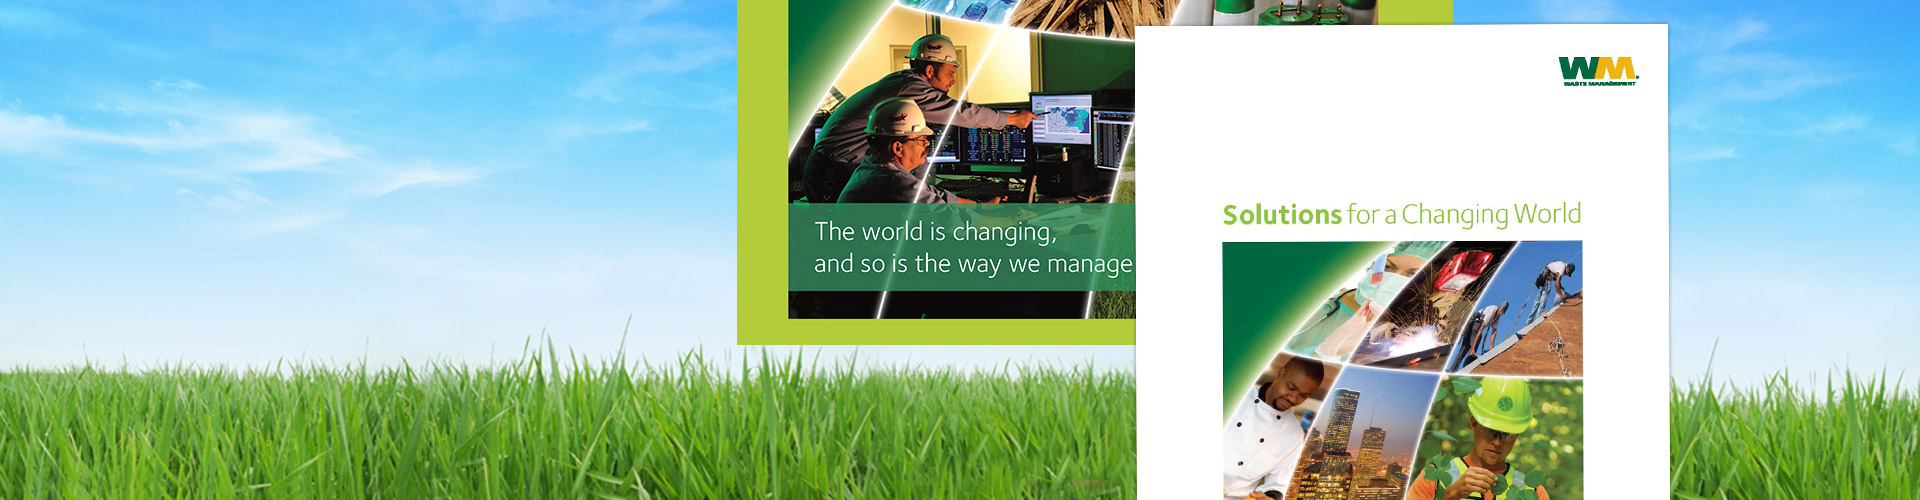 Waste Management Annual Report